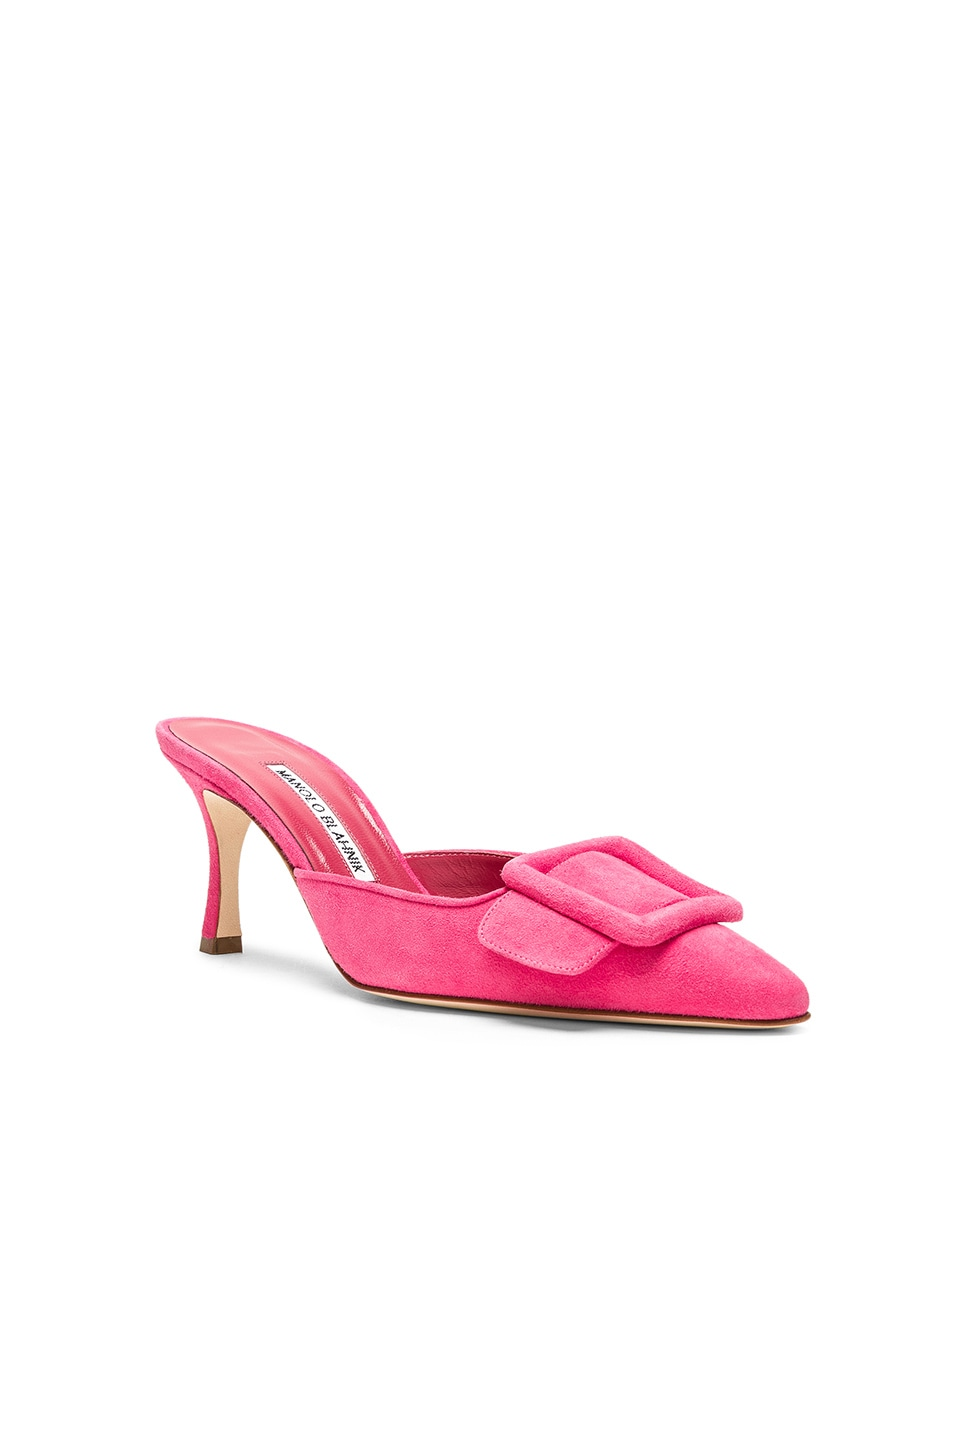 Image 2 of Manolo Blahnik Suede Maysale 70 Mule in Bright Pink